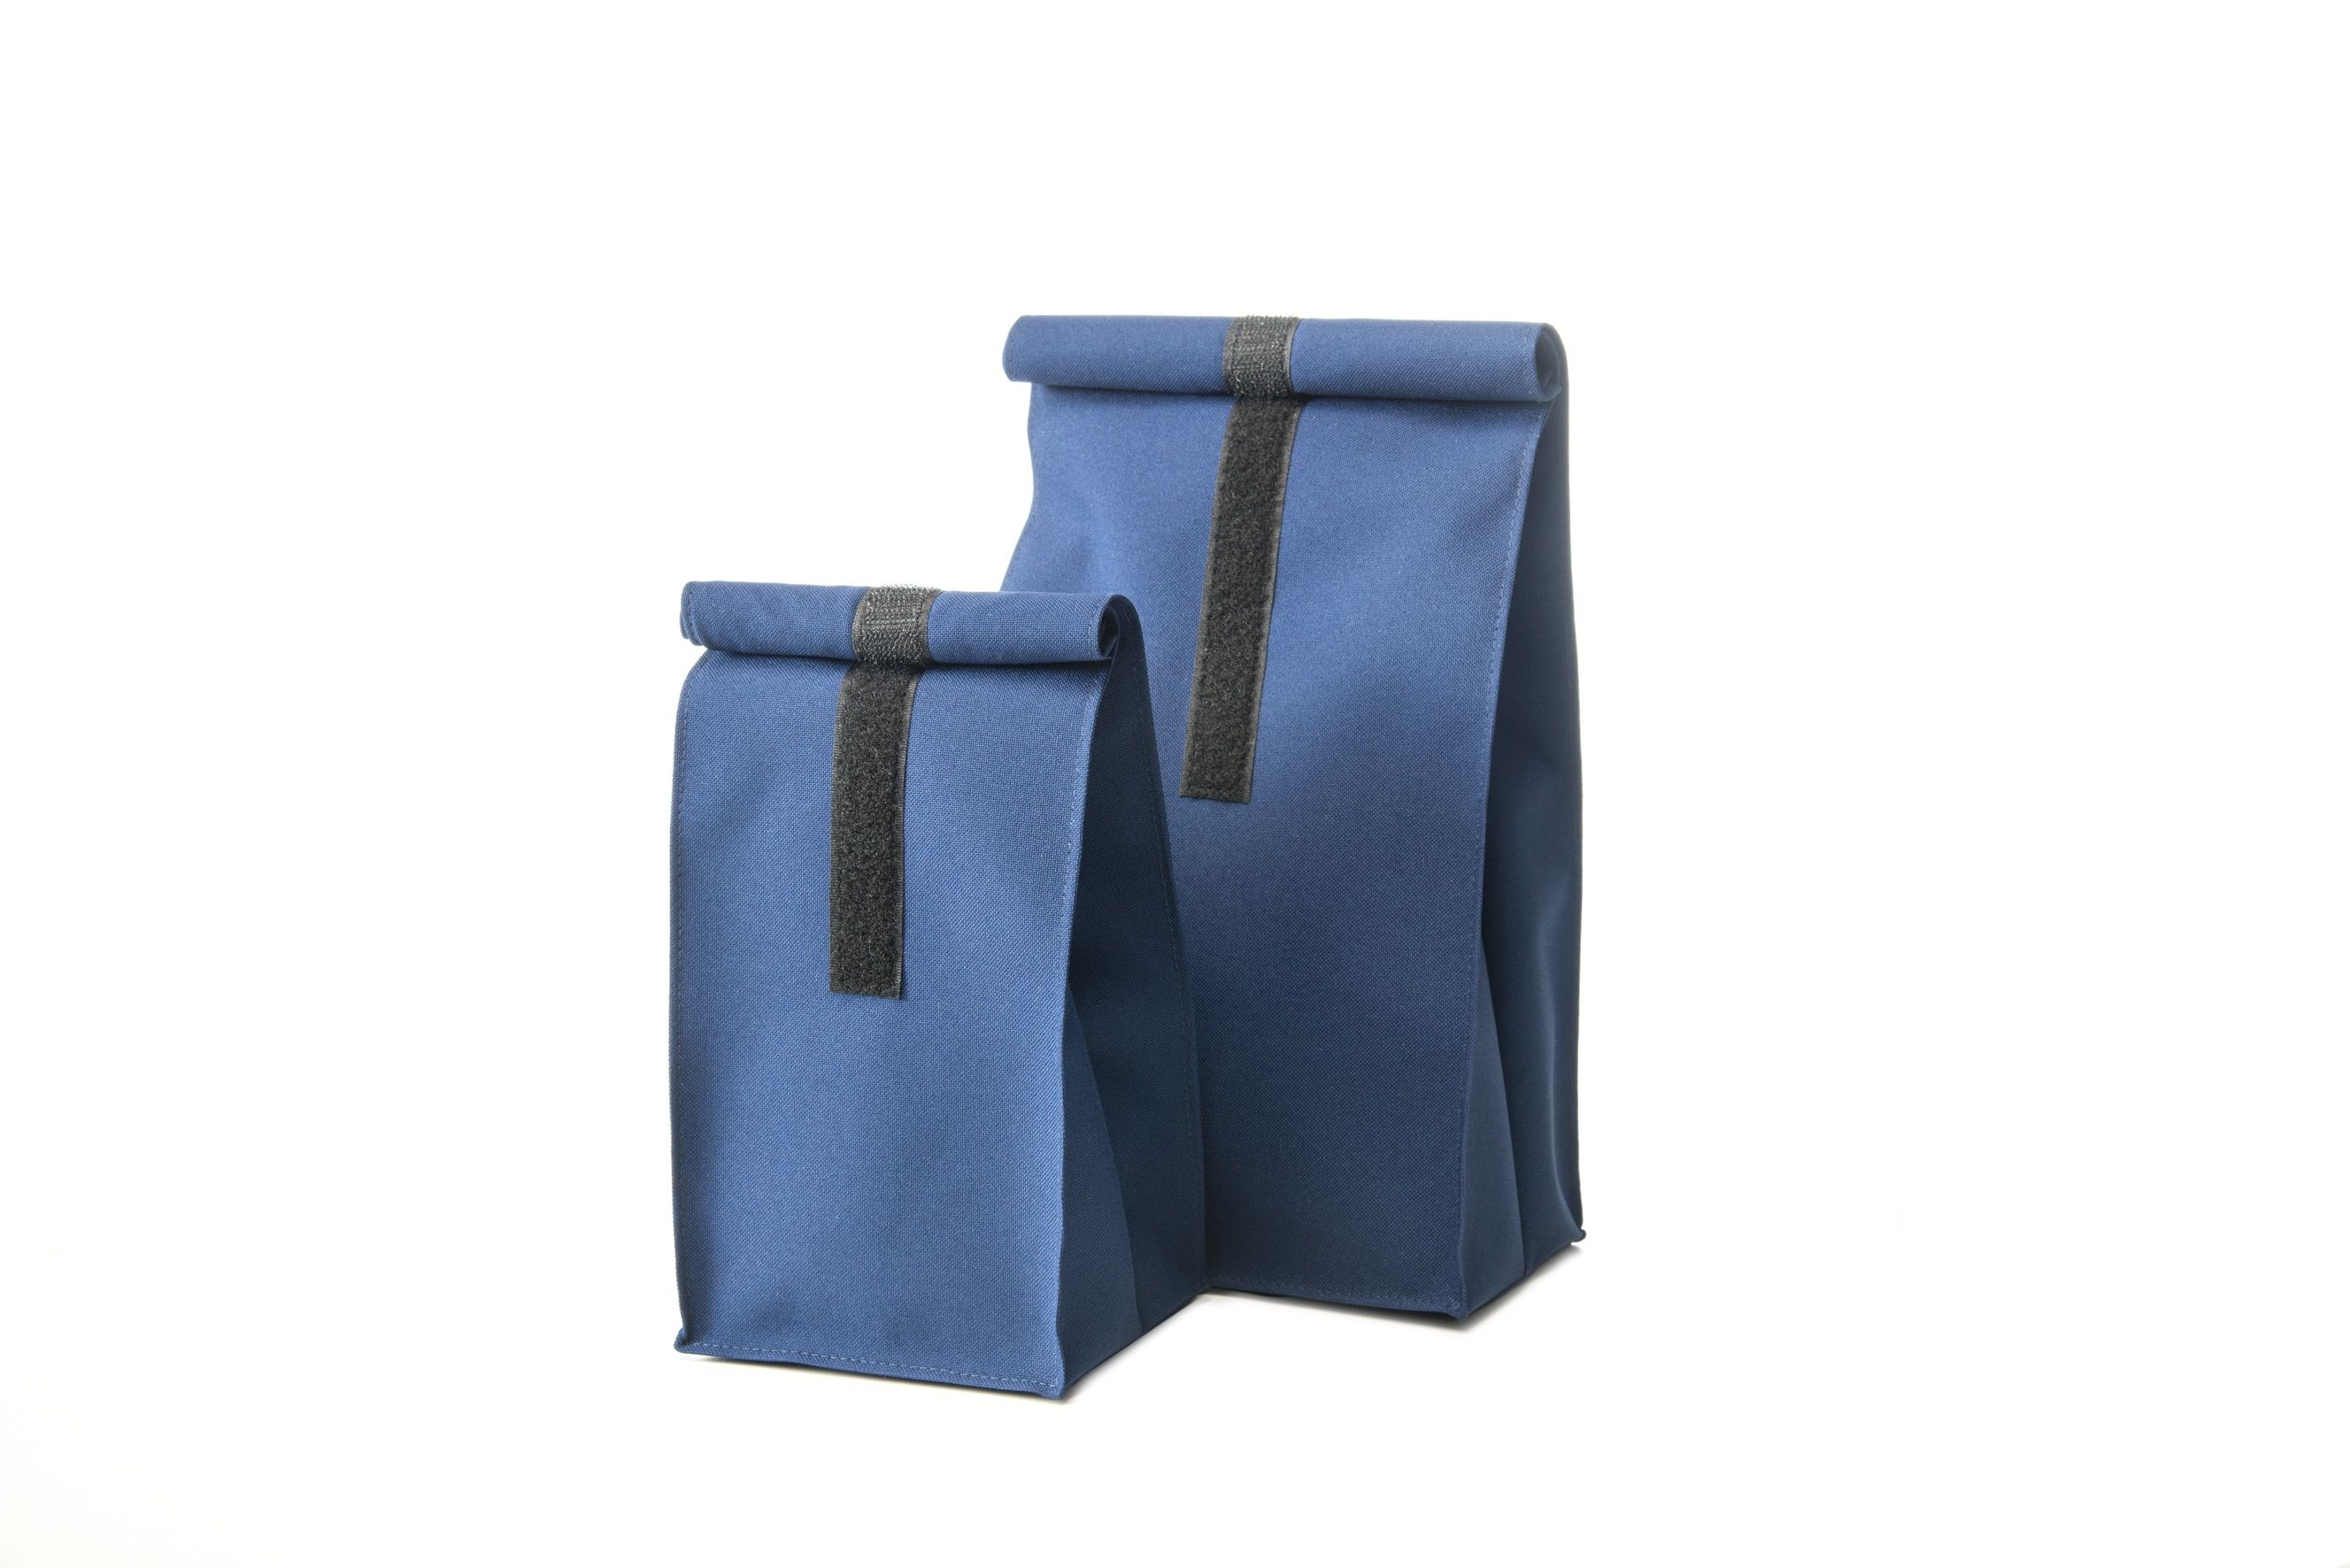 Sessel Romeo Elegance Rollbag By Martí Guixé For Authentics Blue Rollbag Brand